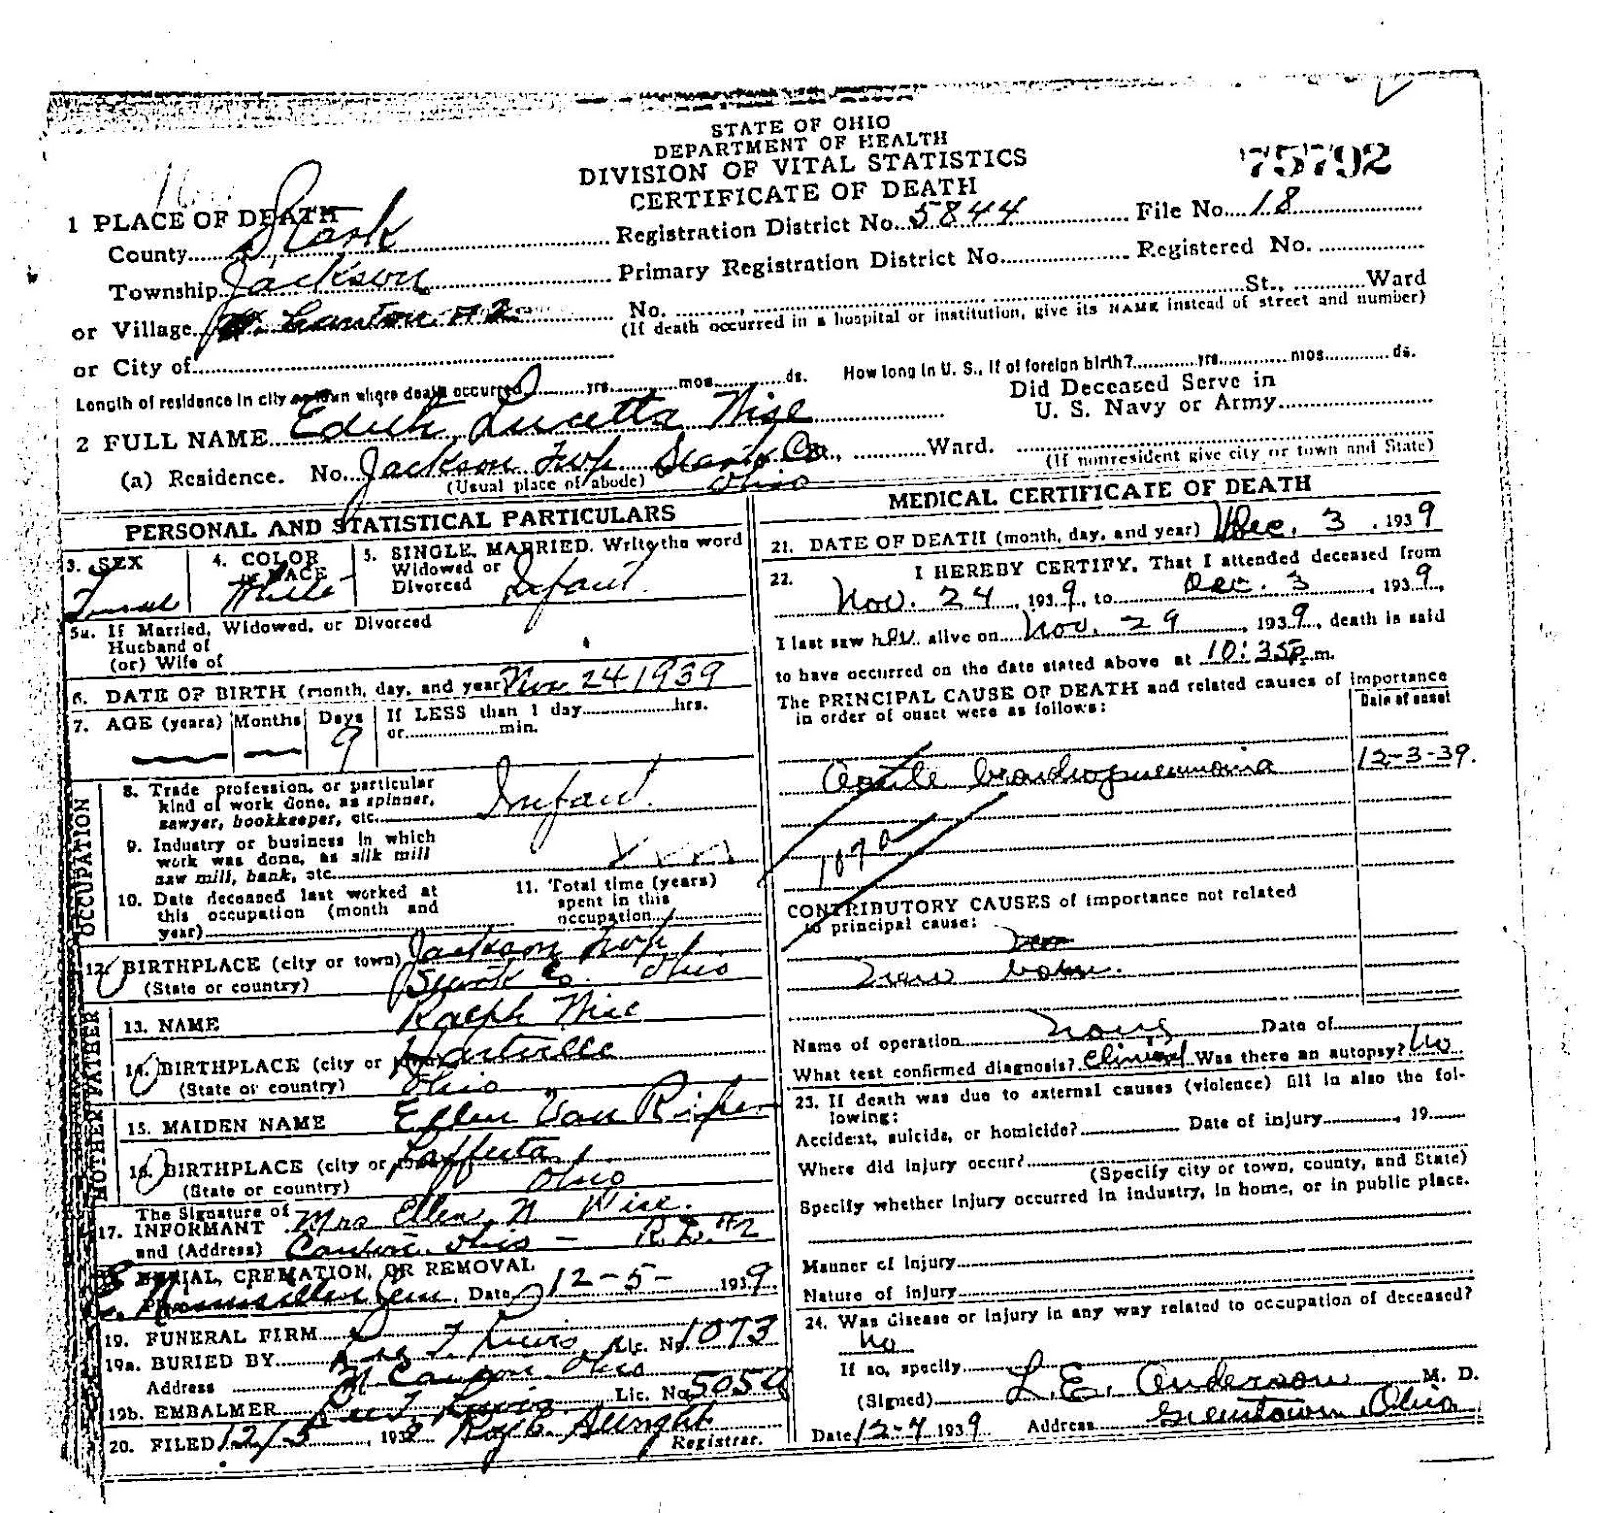 Edith Lucetta Wise - Ohio Death Certificate | Brumbaugh Family Genealogy